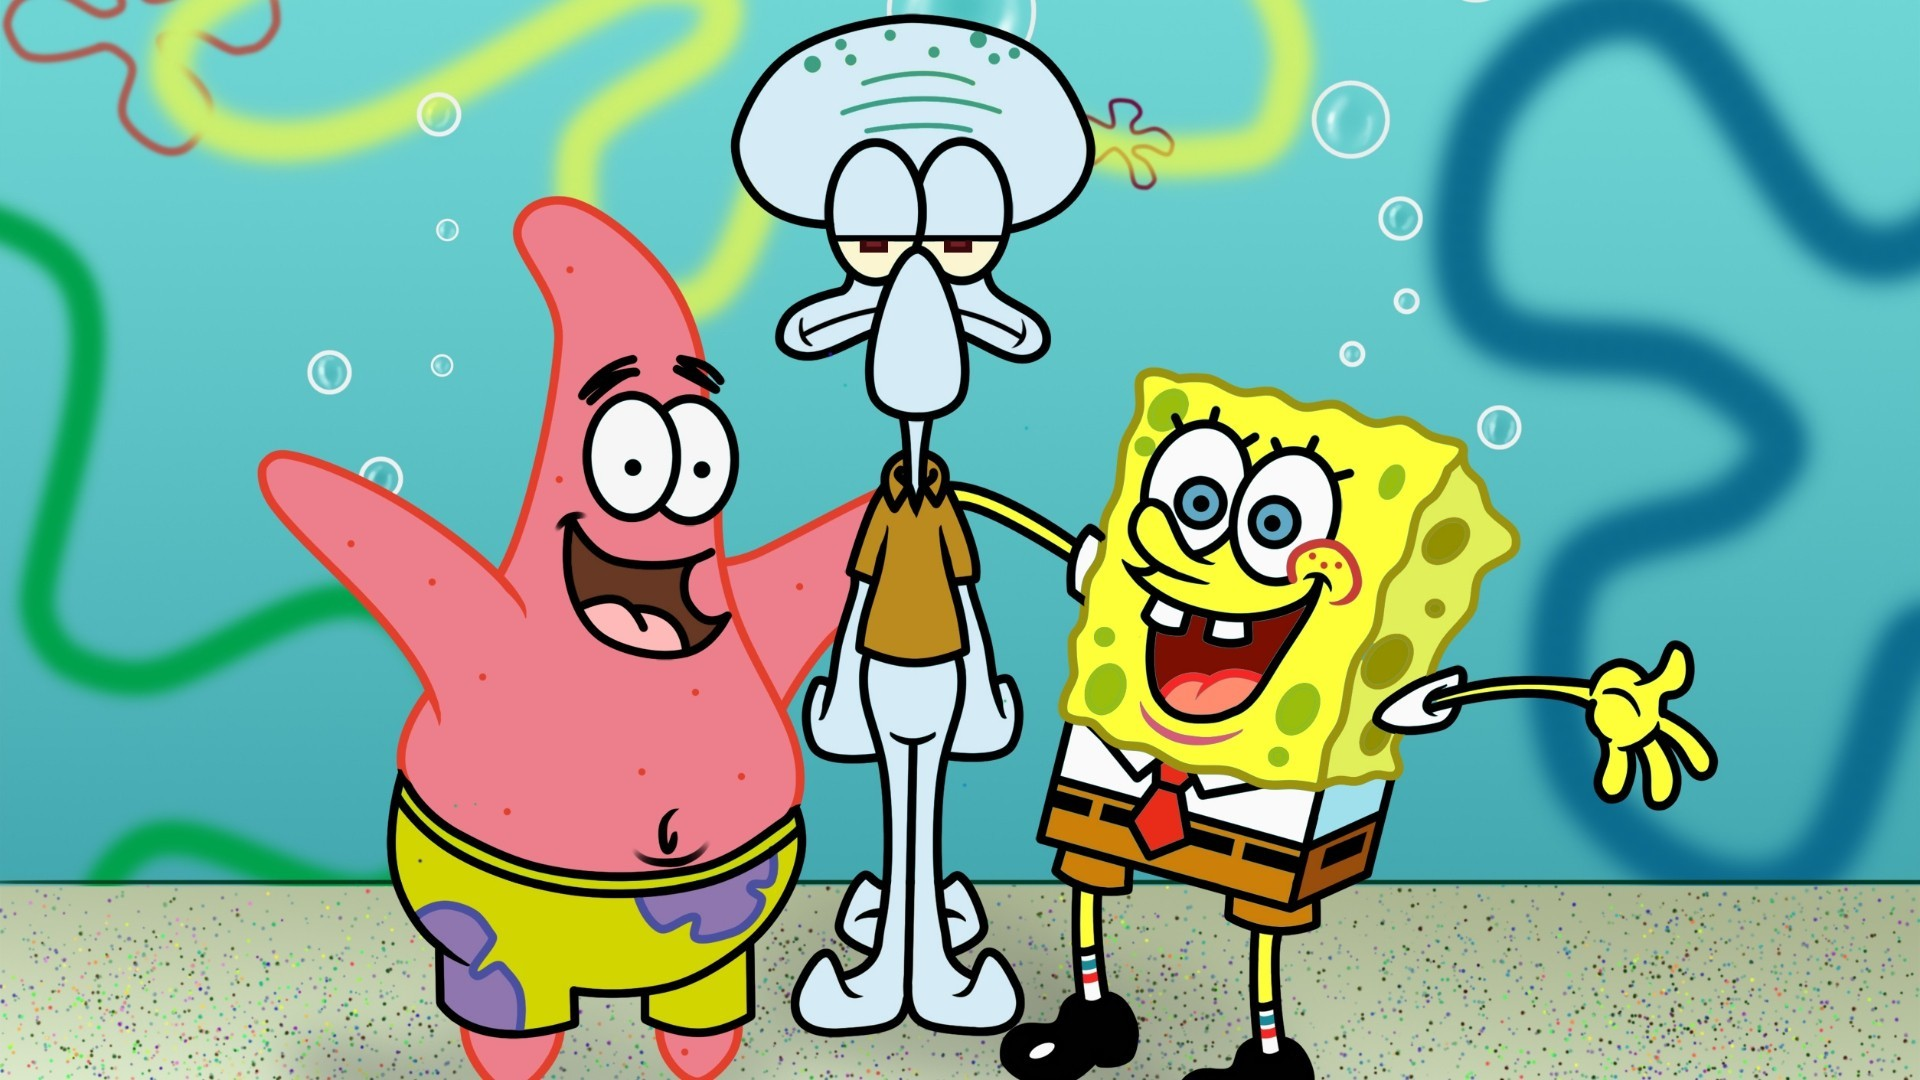 spongebob squarepants full hd wallpaper and background 1920x1080